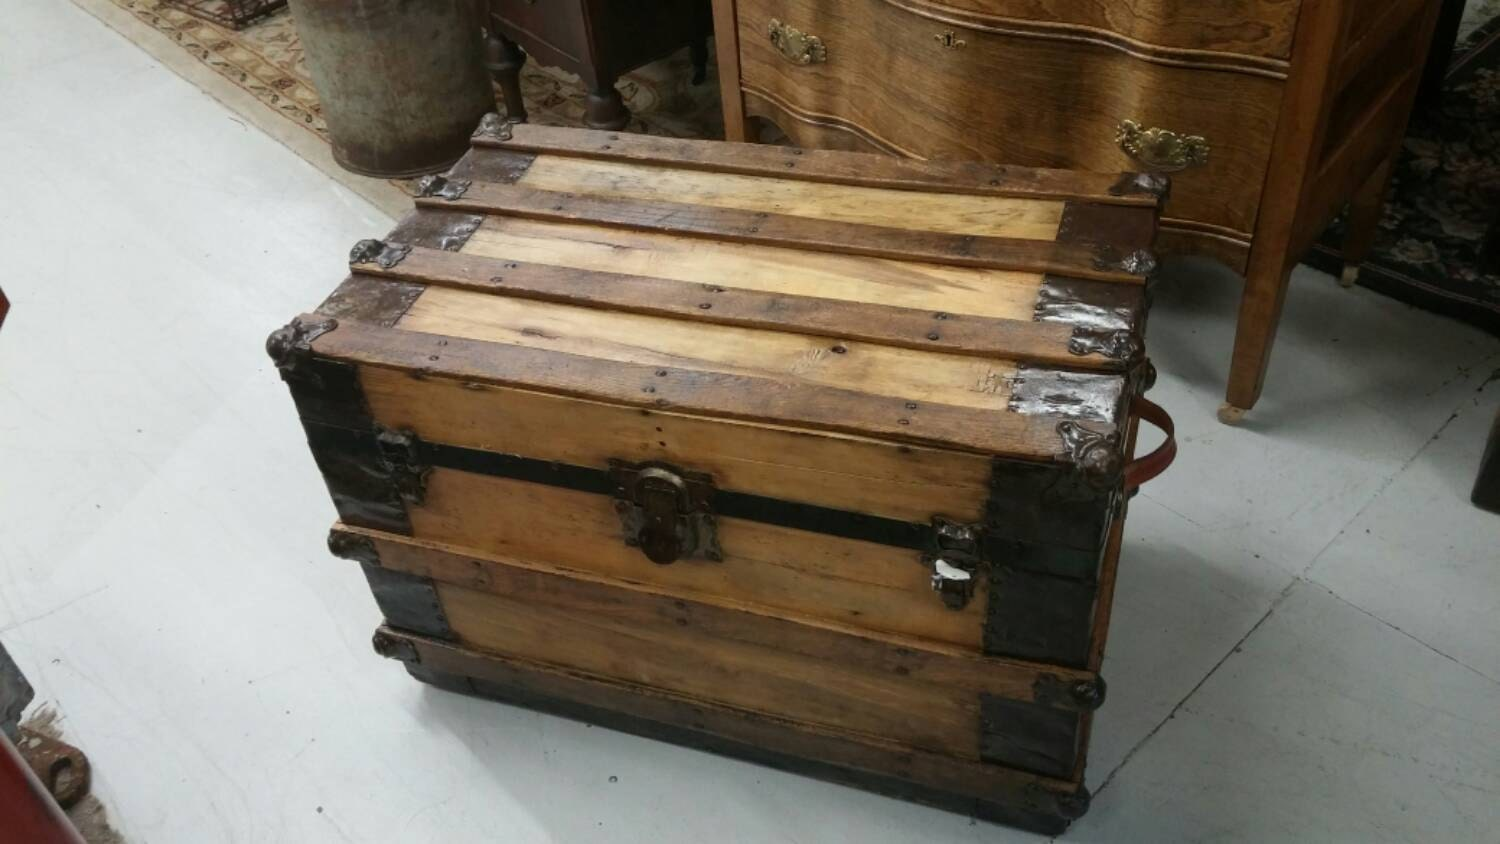 Antique Wood Steamer Trunk Coffee Table Or Blanket Chest With